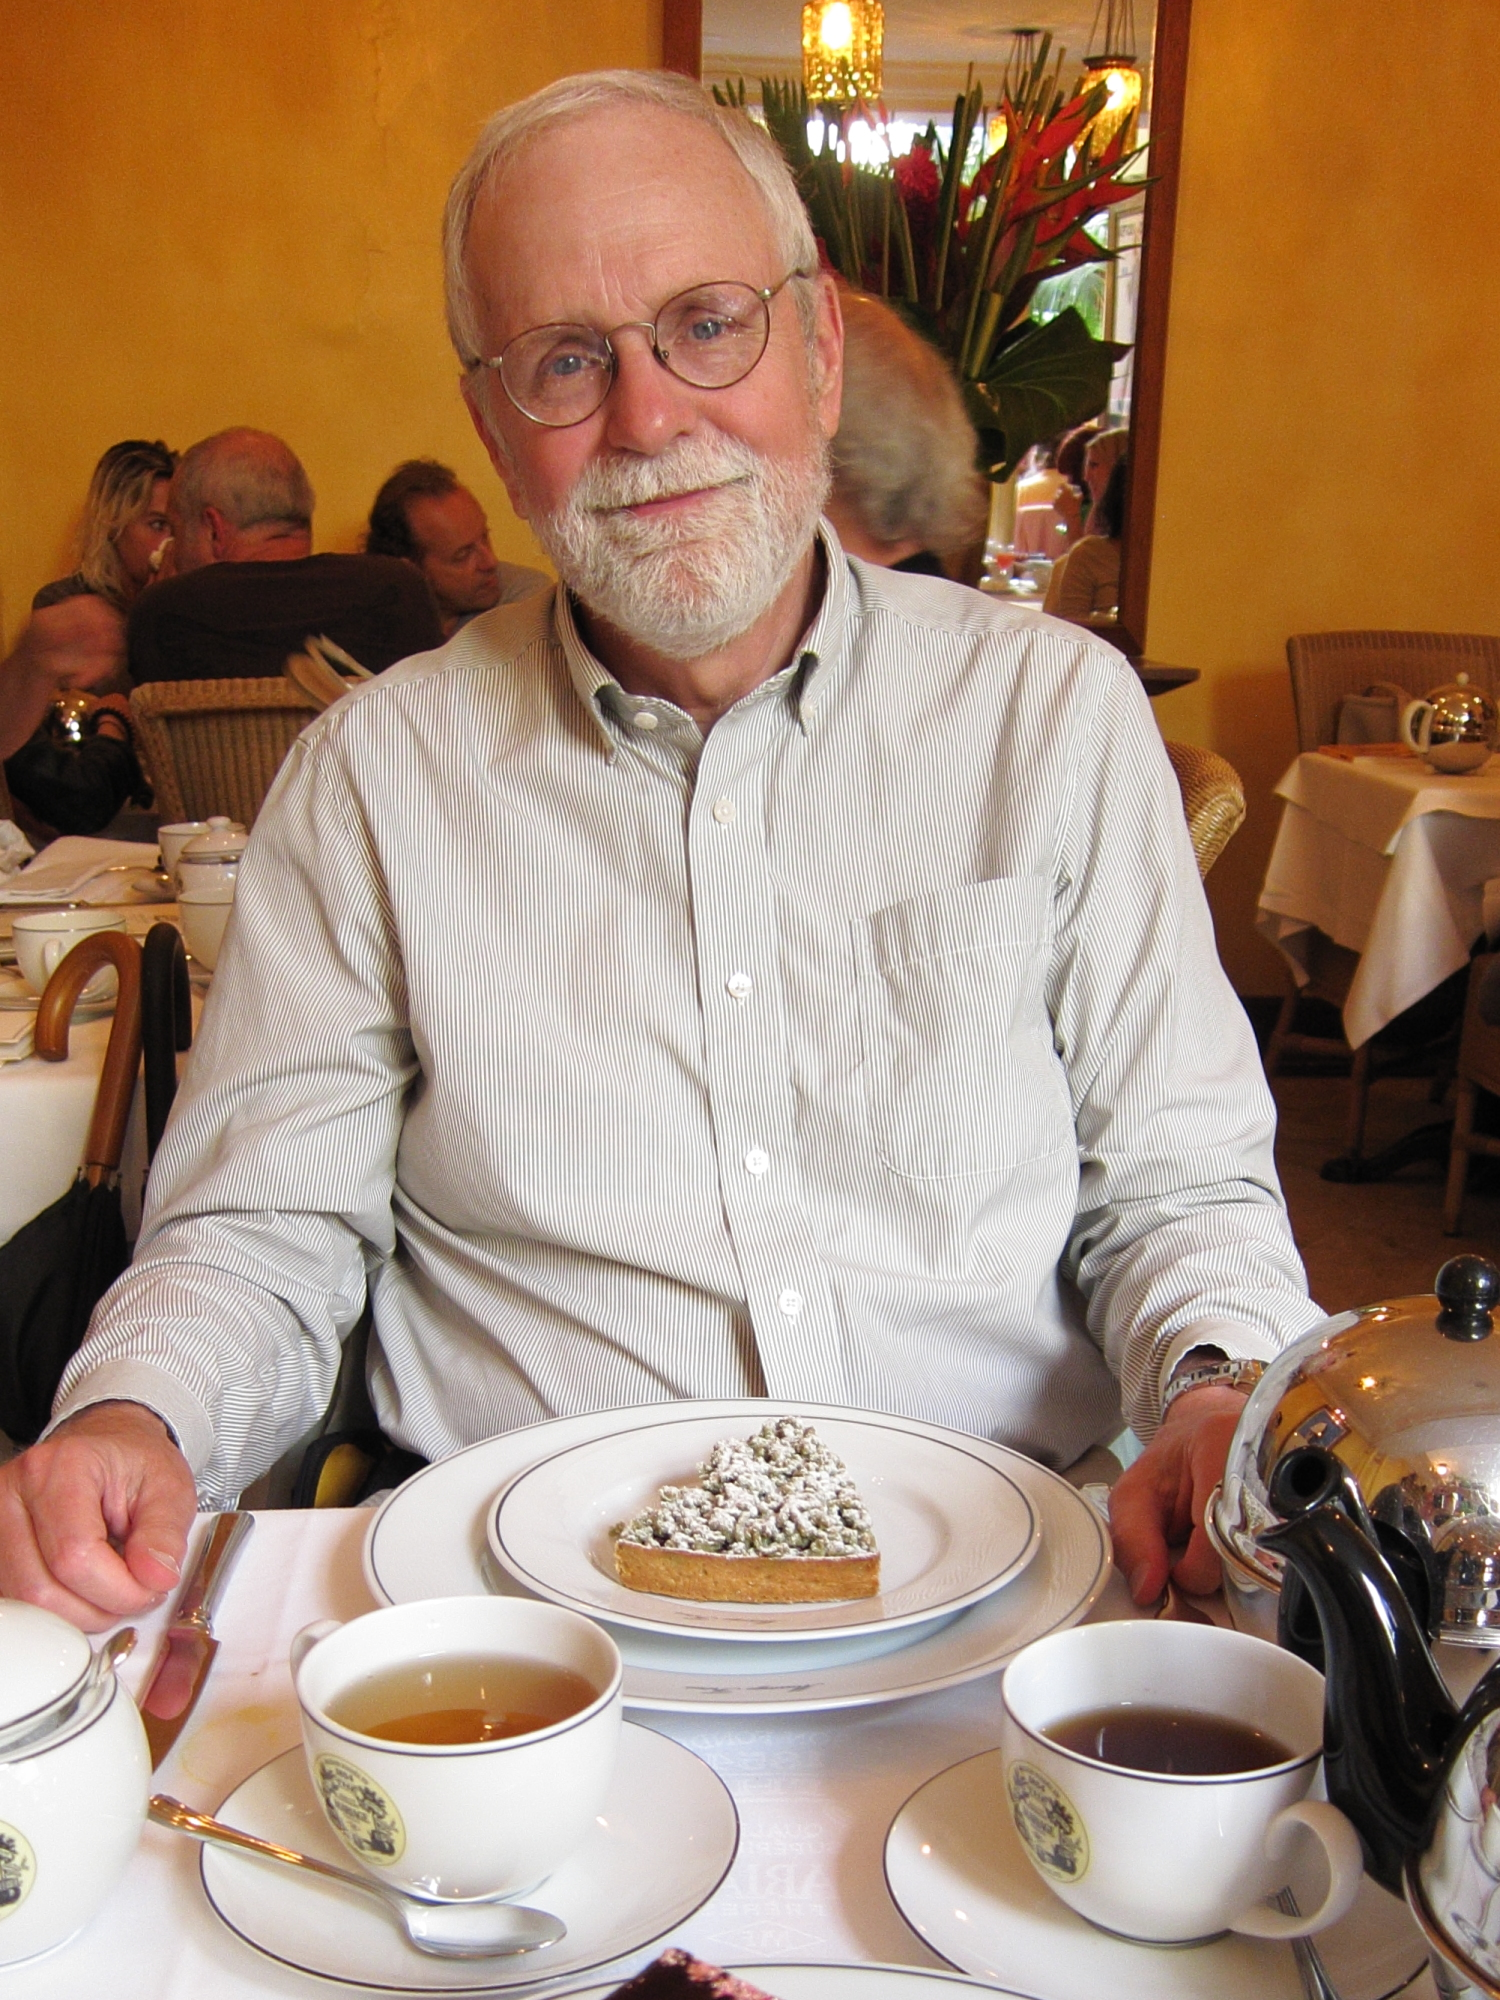 Bob in seventh heaven with his cherry tart dessert at Mariage Frères in the Marais.